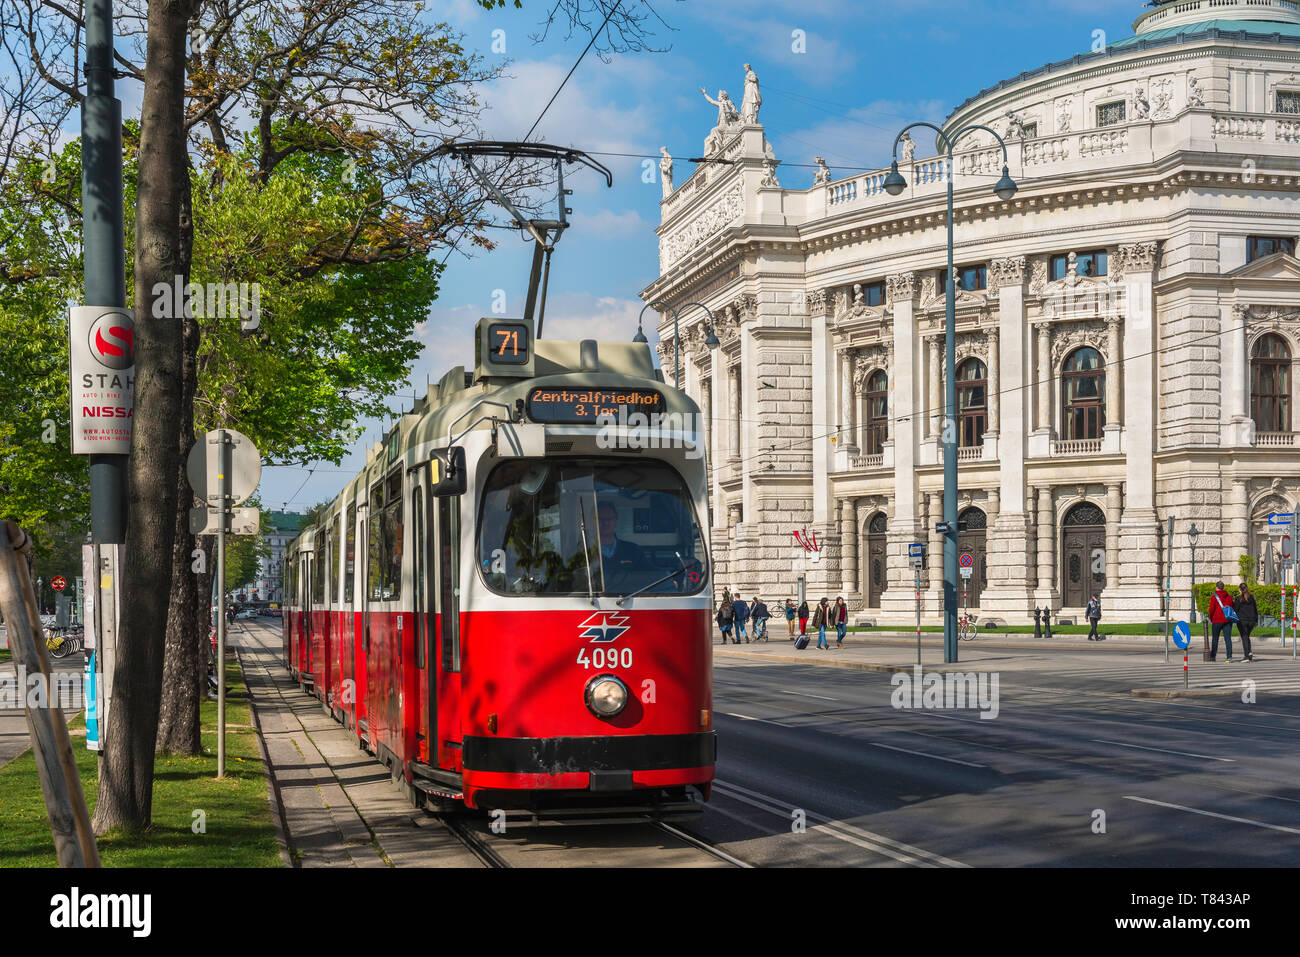 Ringstrasse Vienna, view of a tram on the Ringstrasse in central Vienna with the national theatre building (Burgtheater) in the background, Austria. Stock Photo